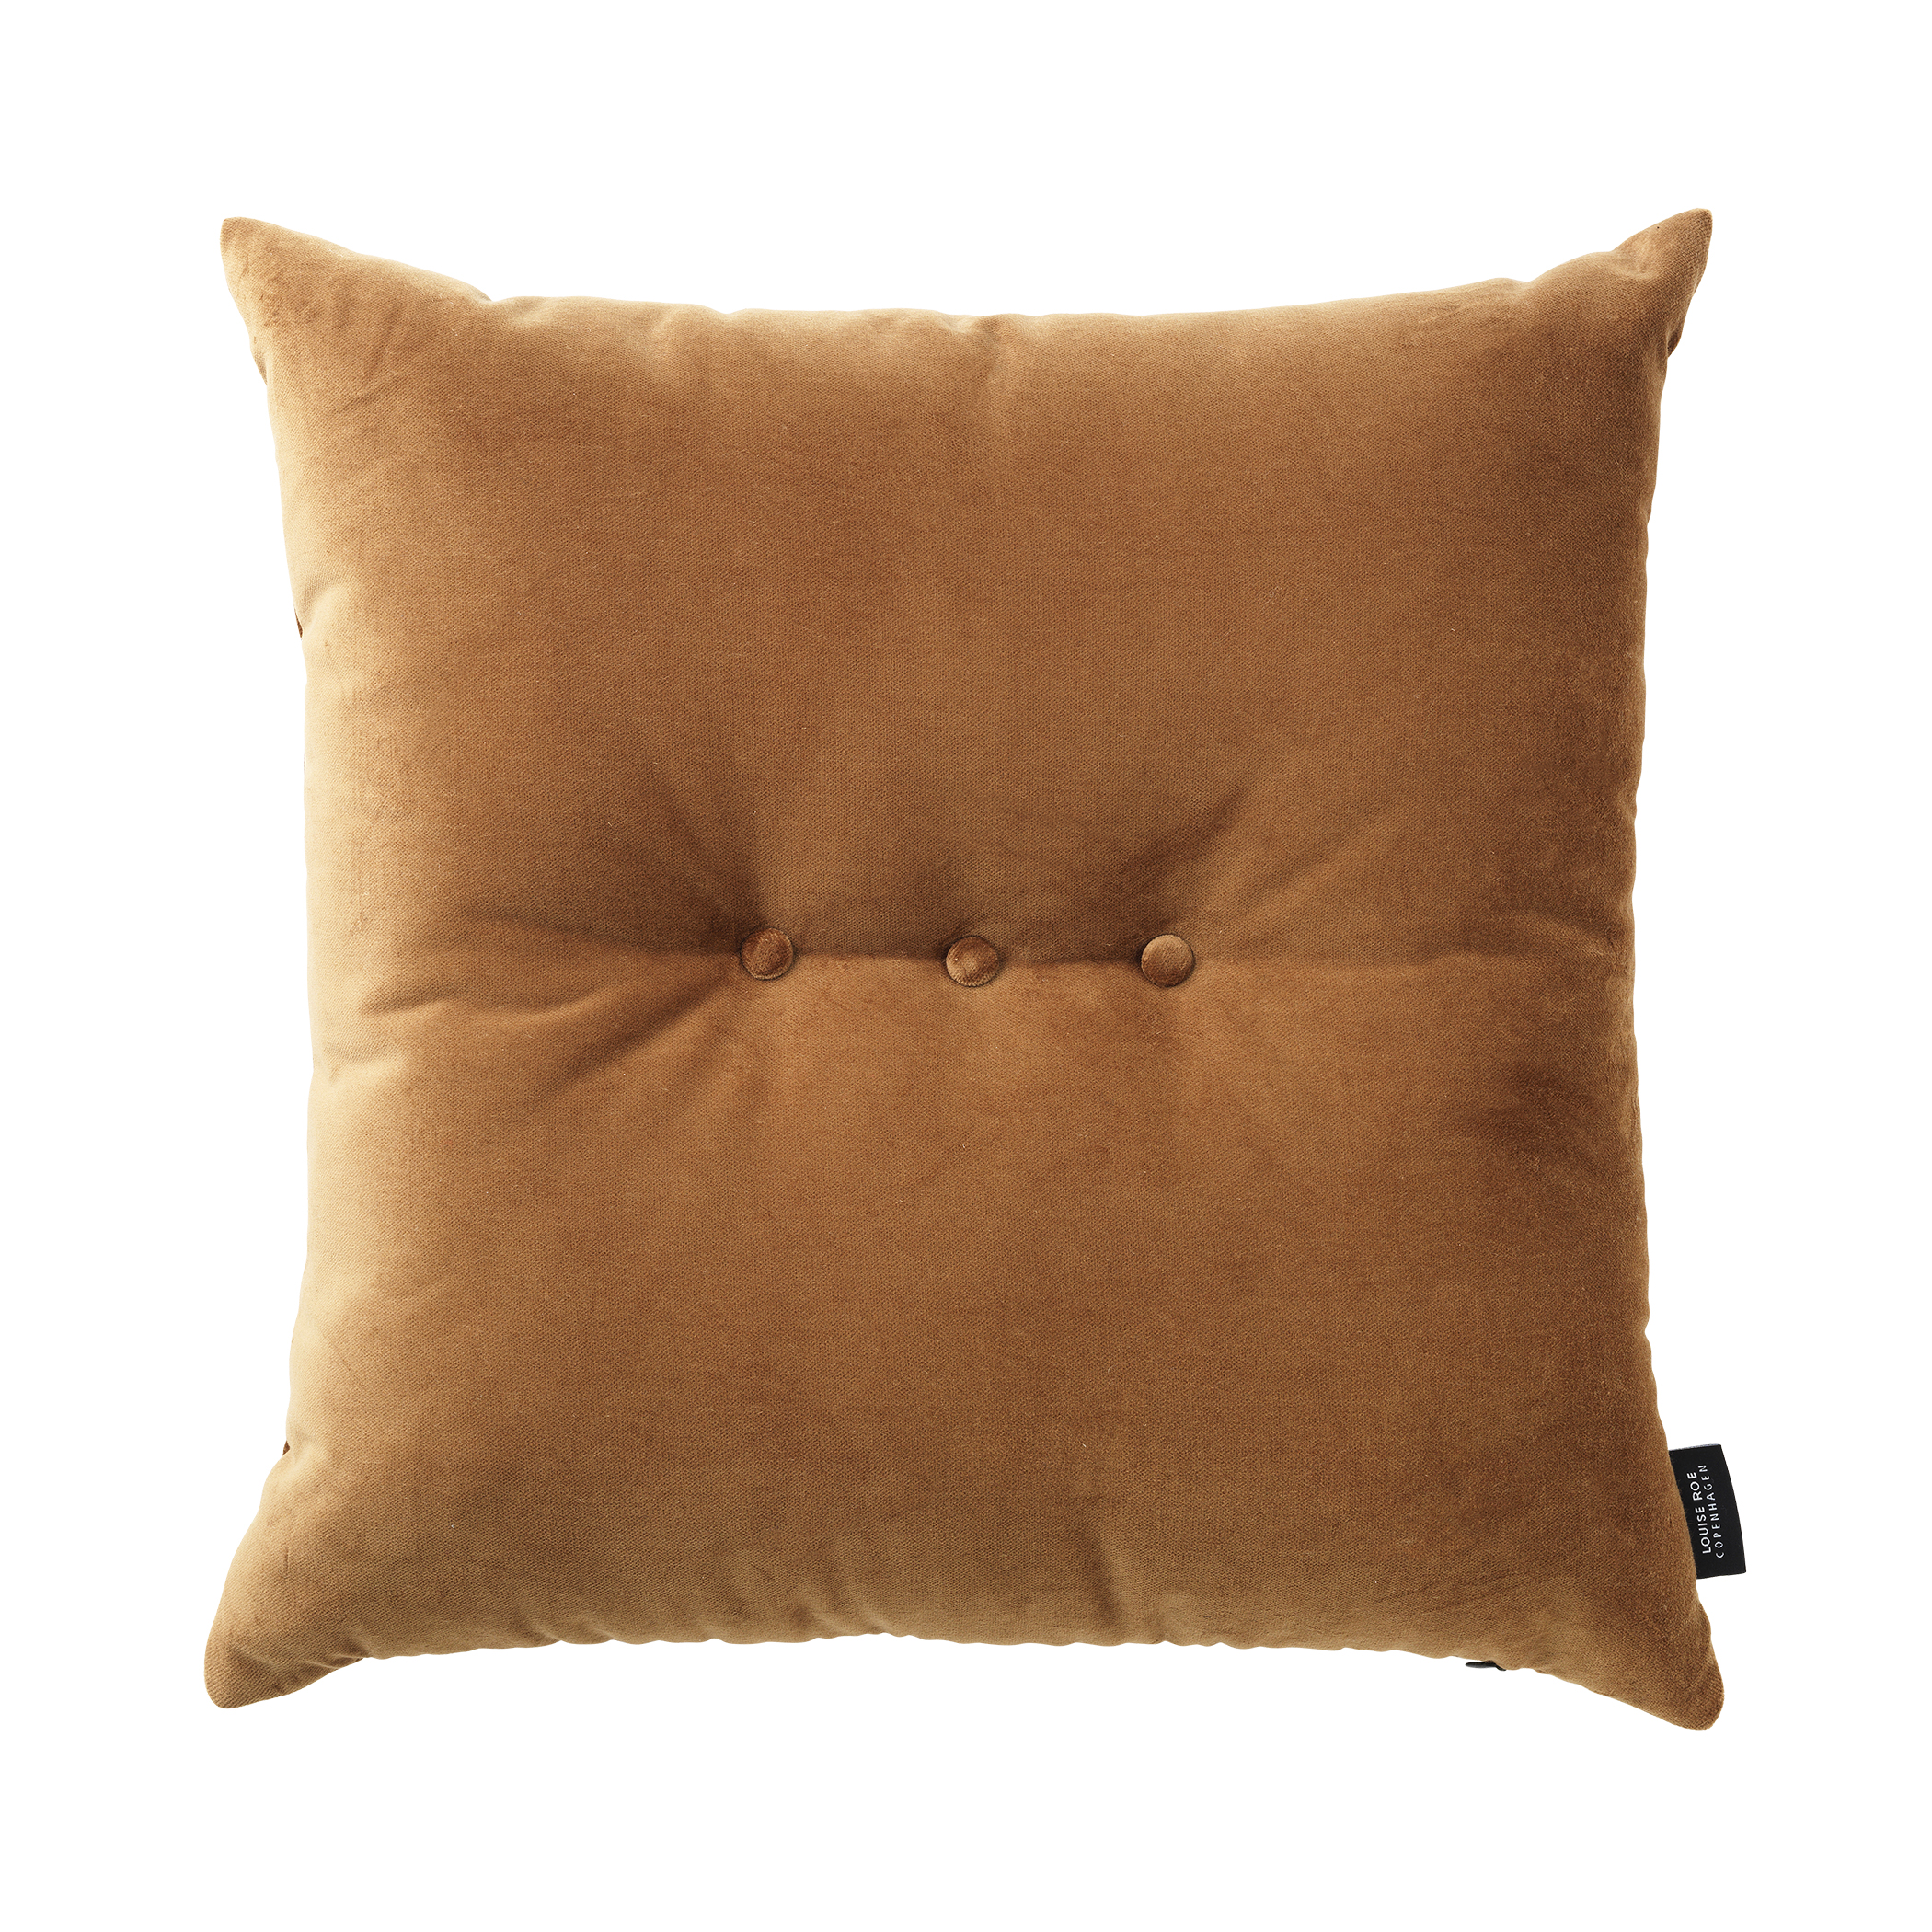 3 Dots_Cushion_Amber_101415050-66.jpg